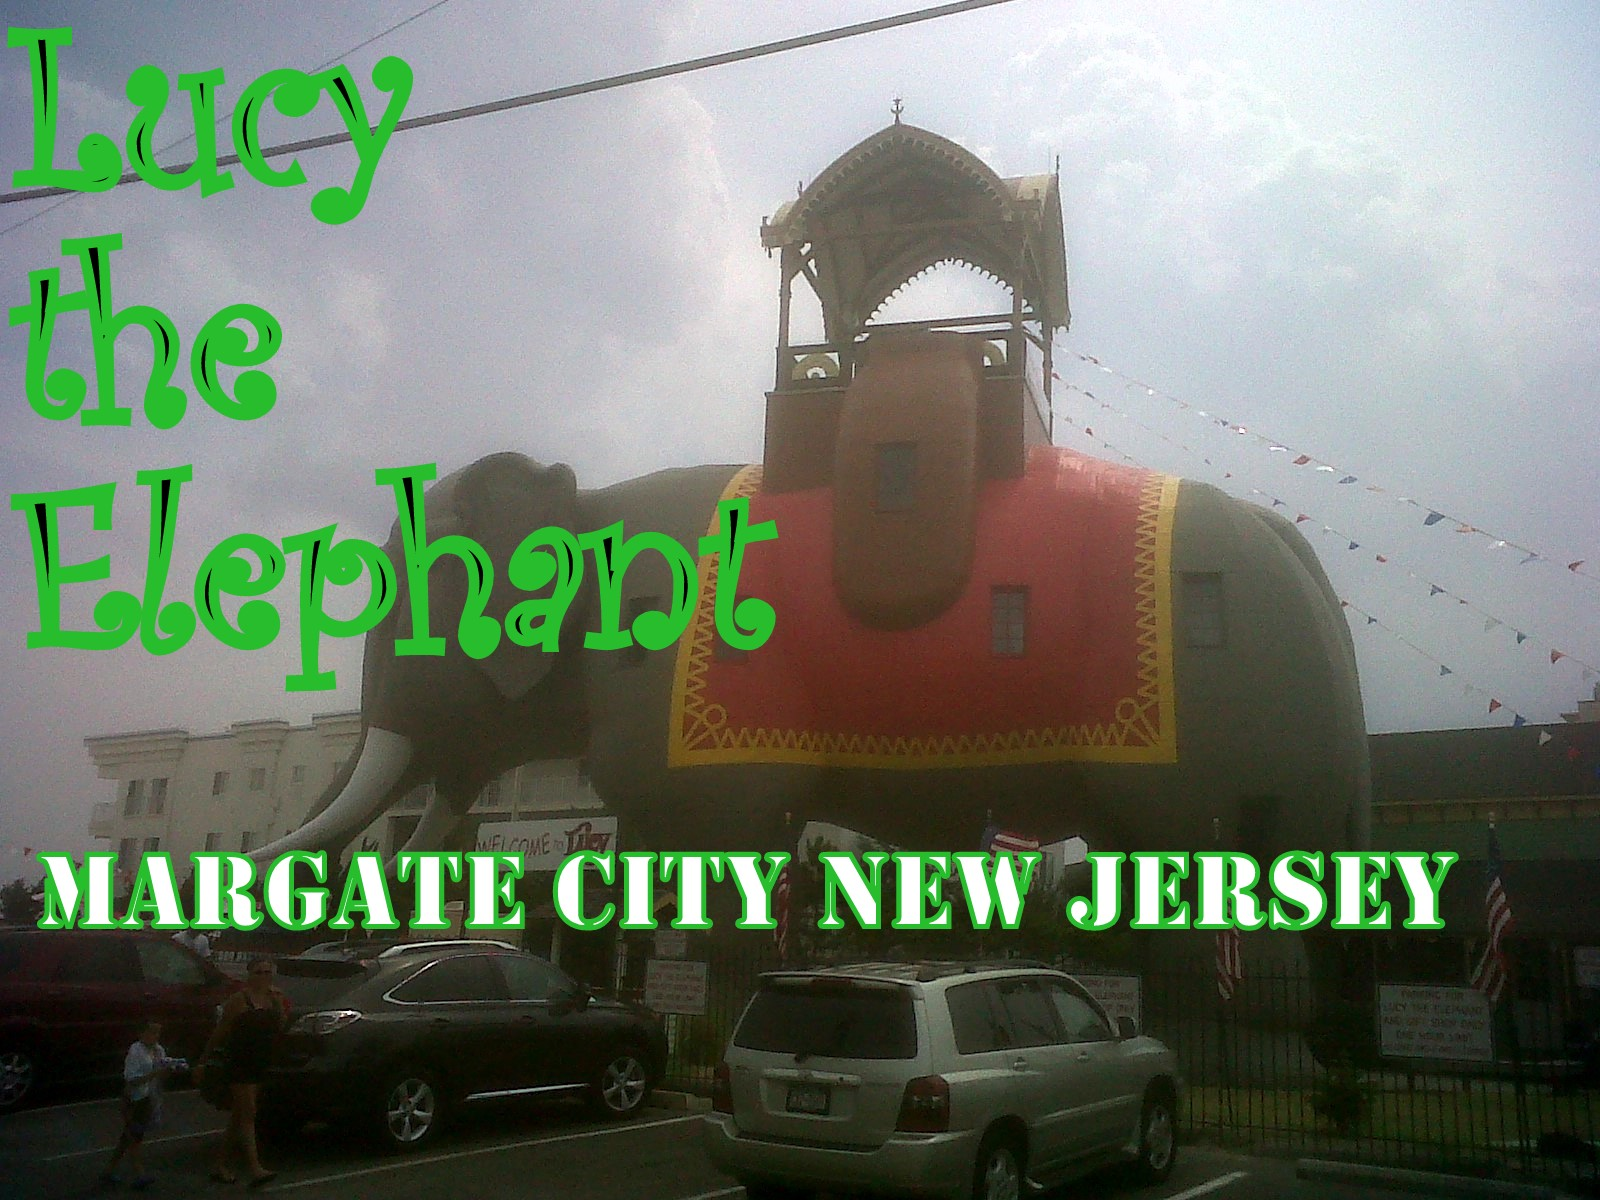 Personals in margate city nj Margate City, NJ